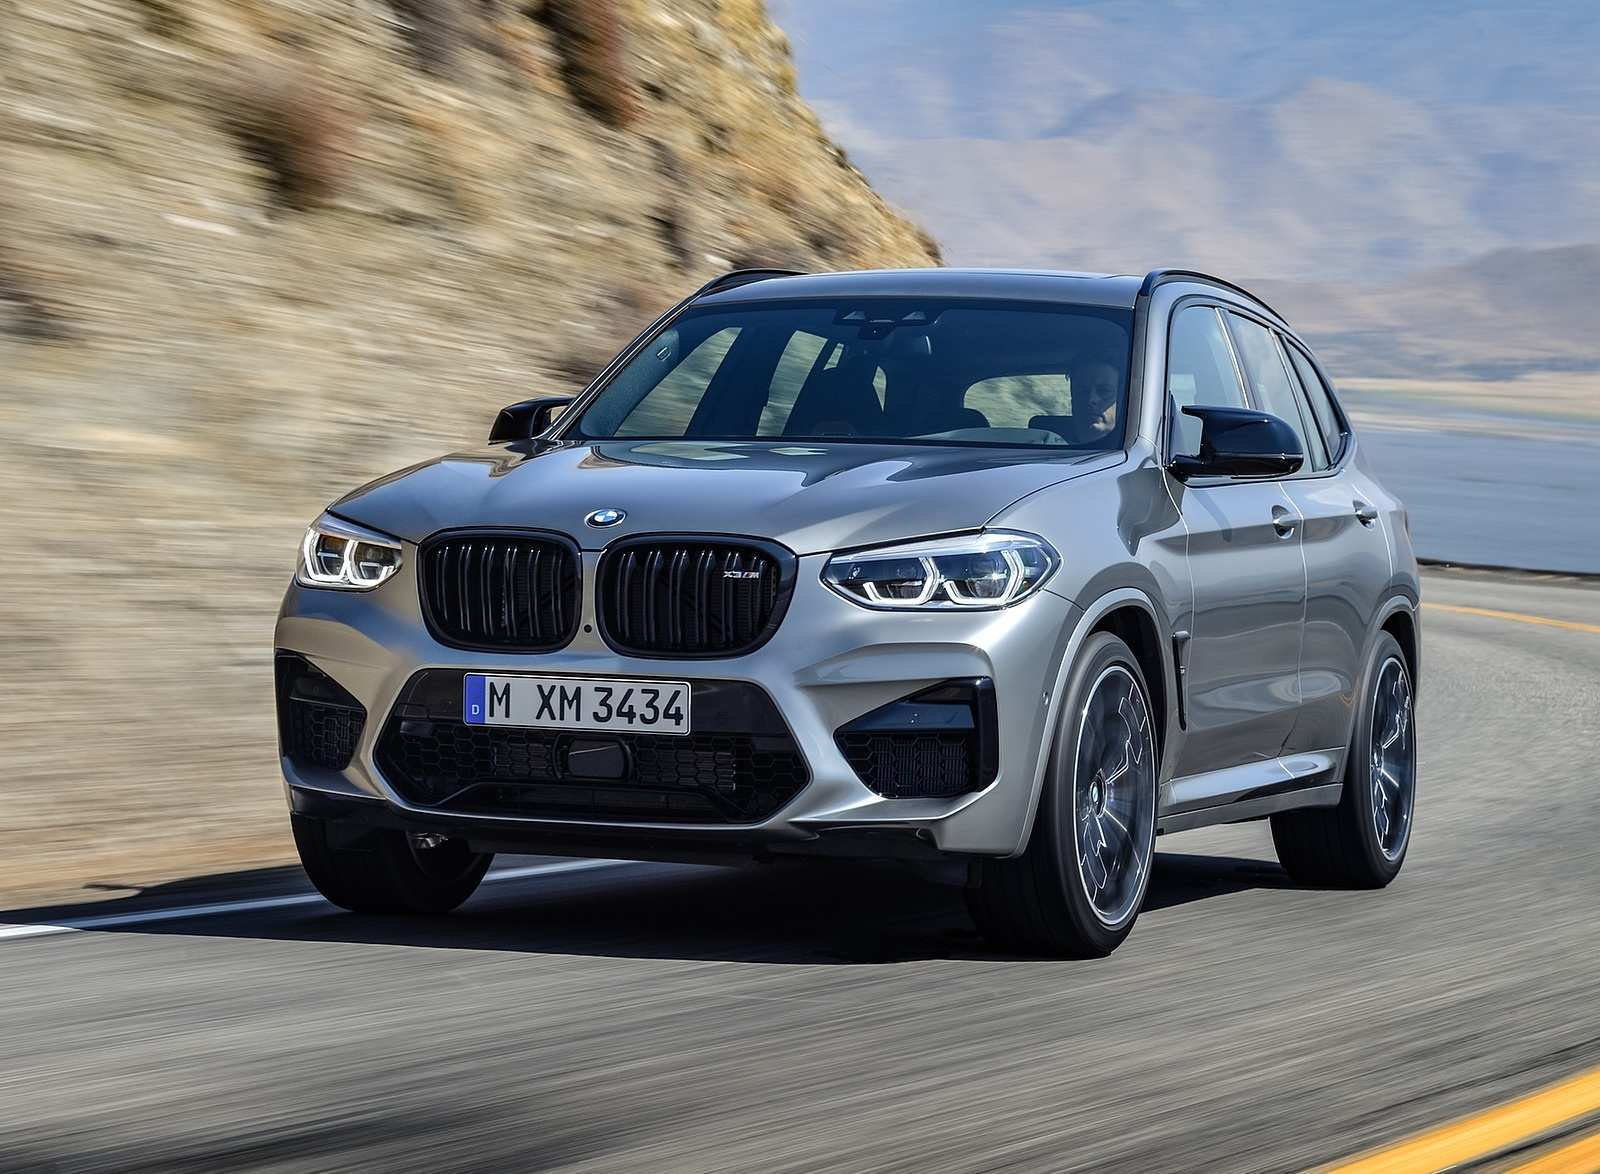 93 All New 2020 BMW X3 Rumors